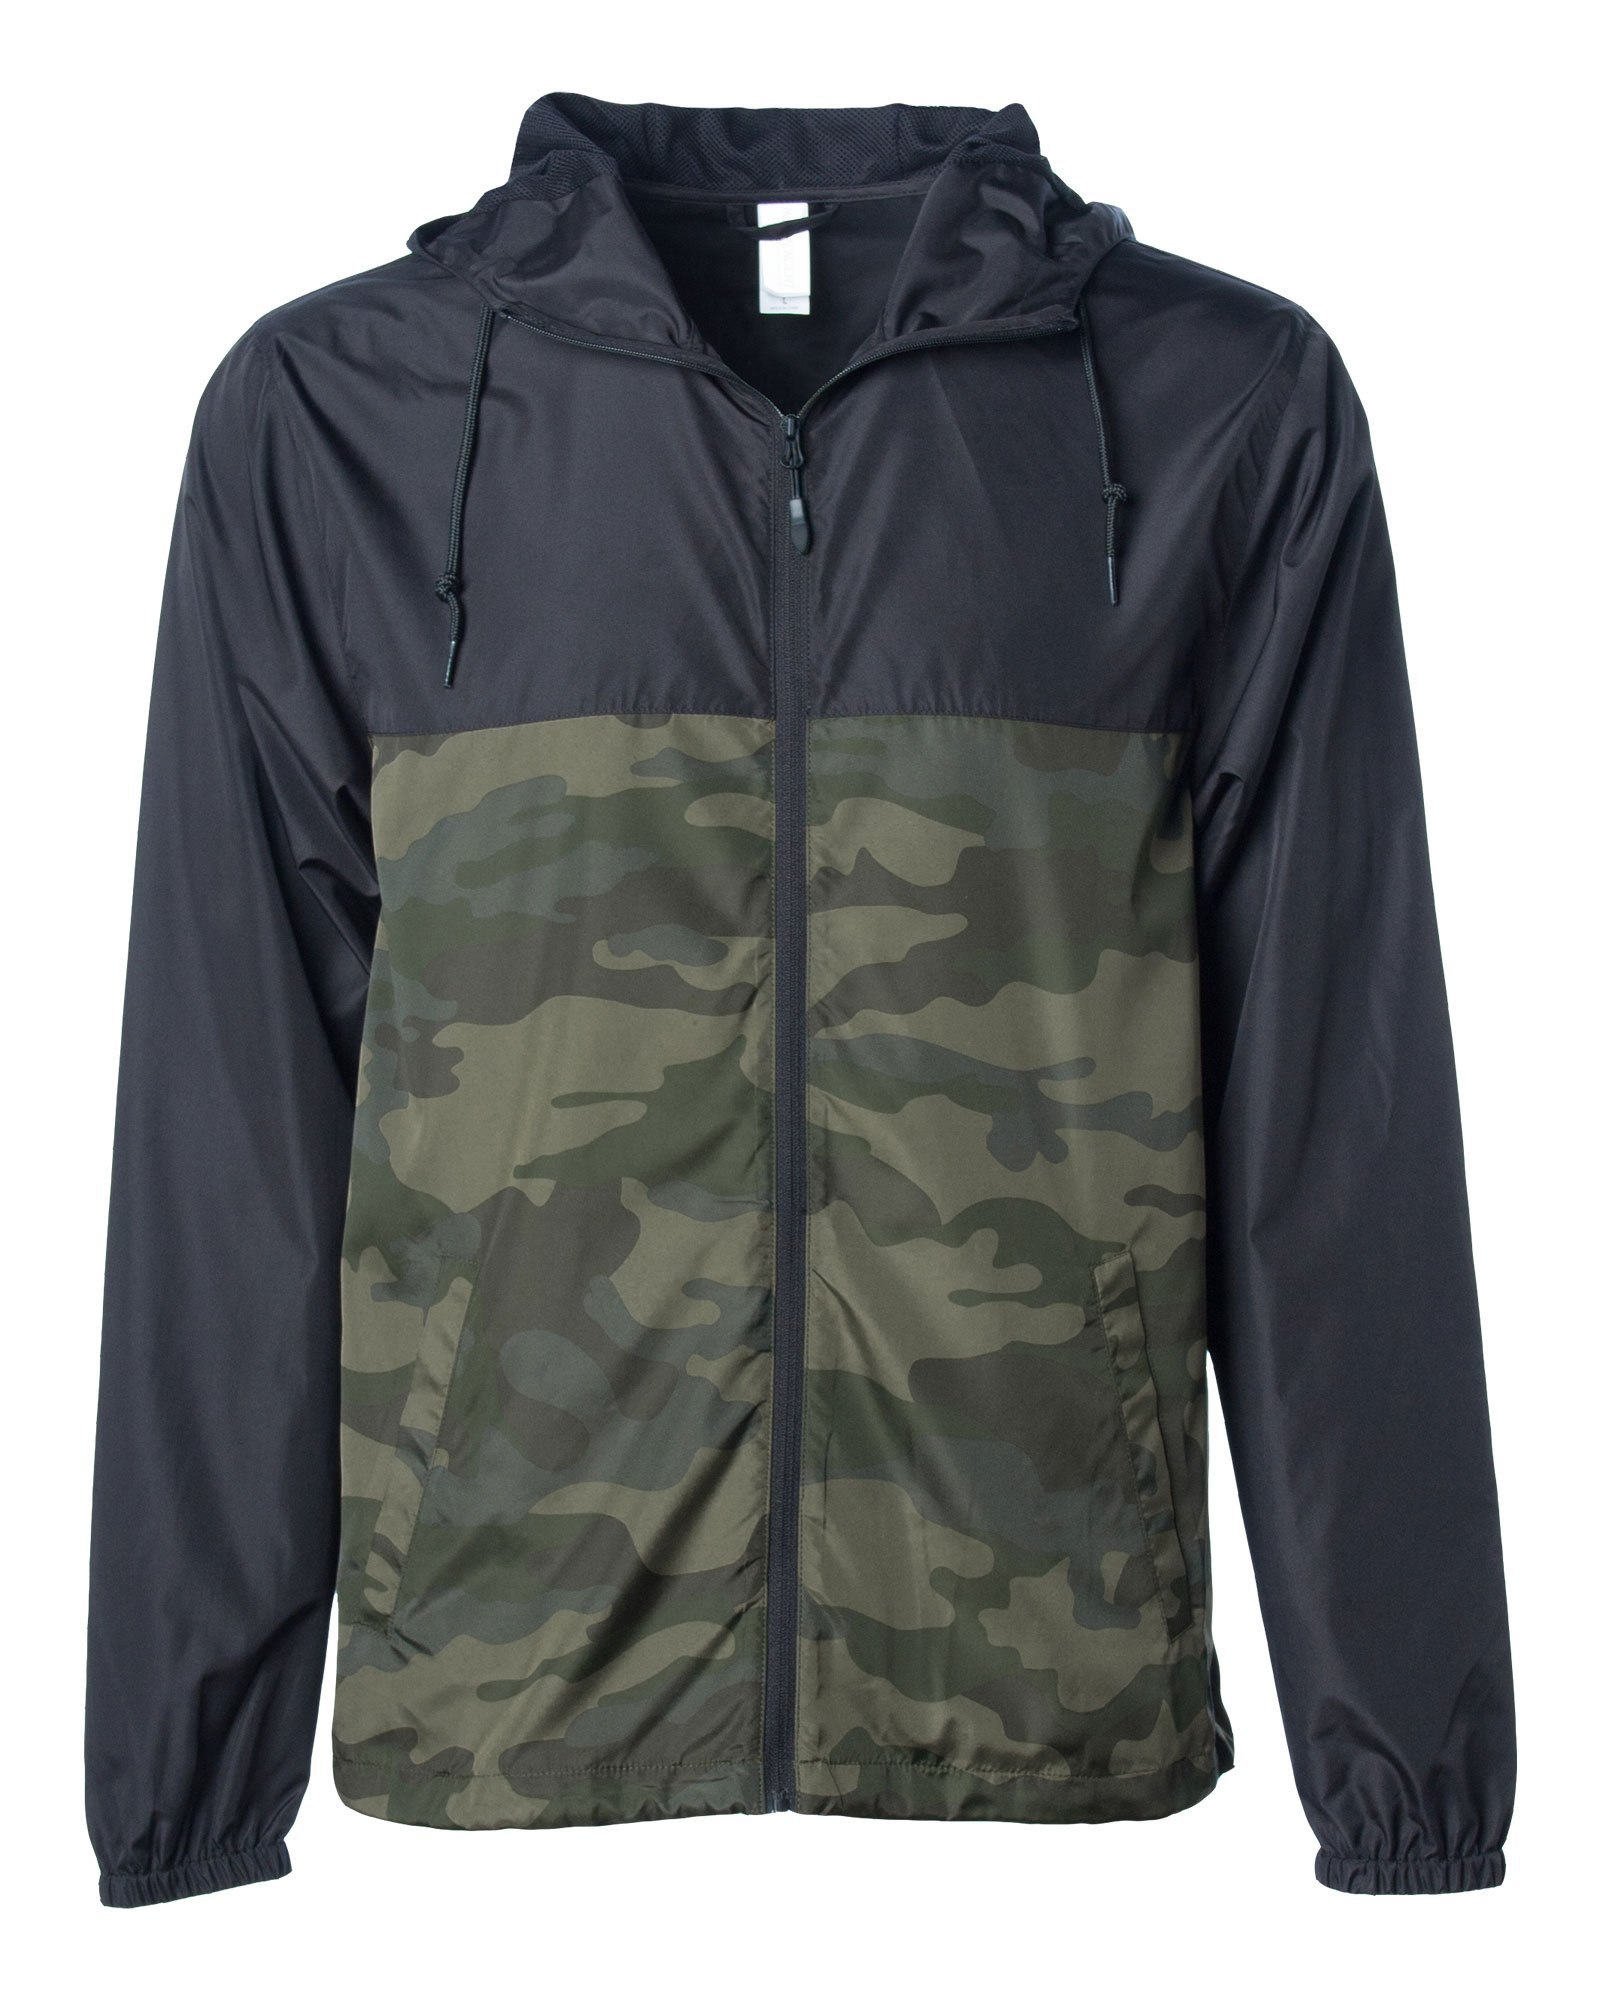 Global Blank Men's Lightweight Windbreaker Winter Jacket Water Resistant Shell Black/Camo by Global Blank